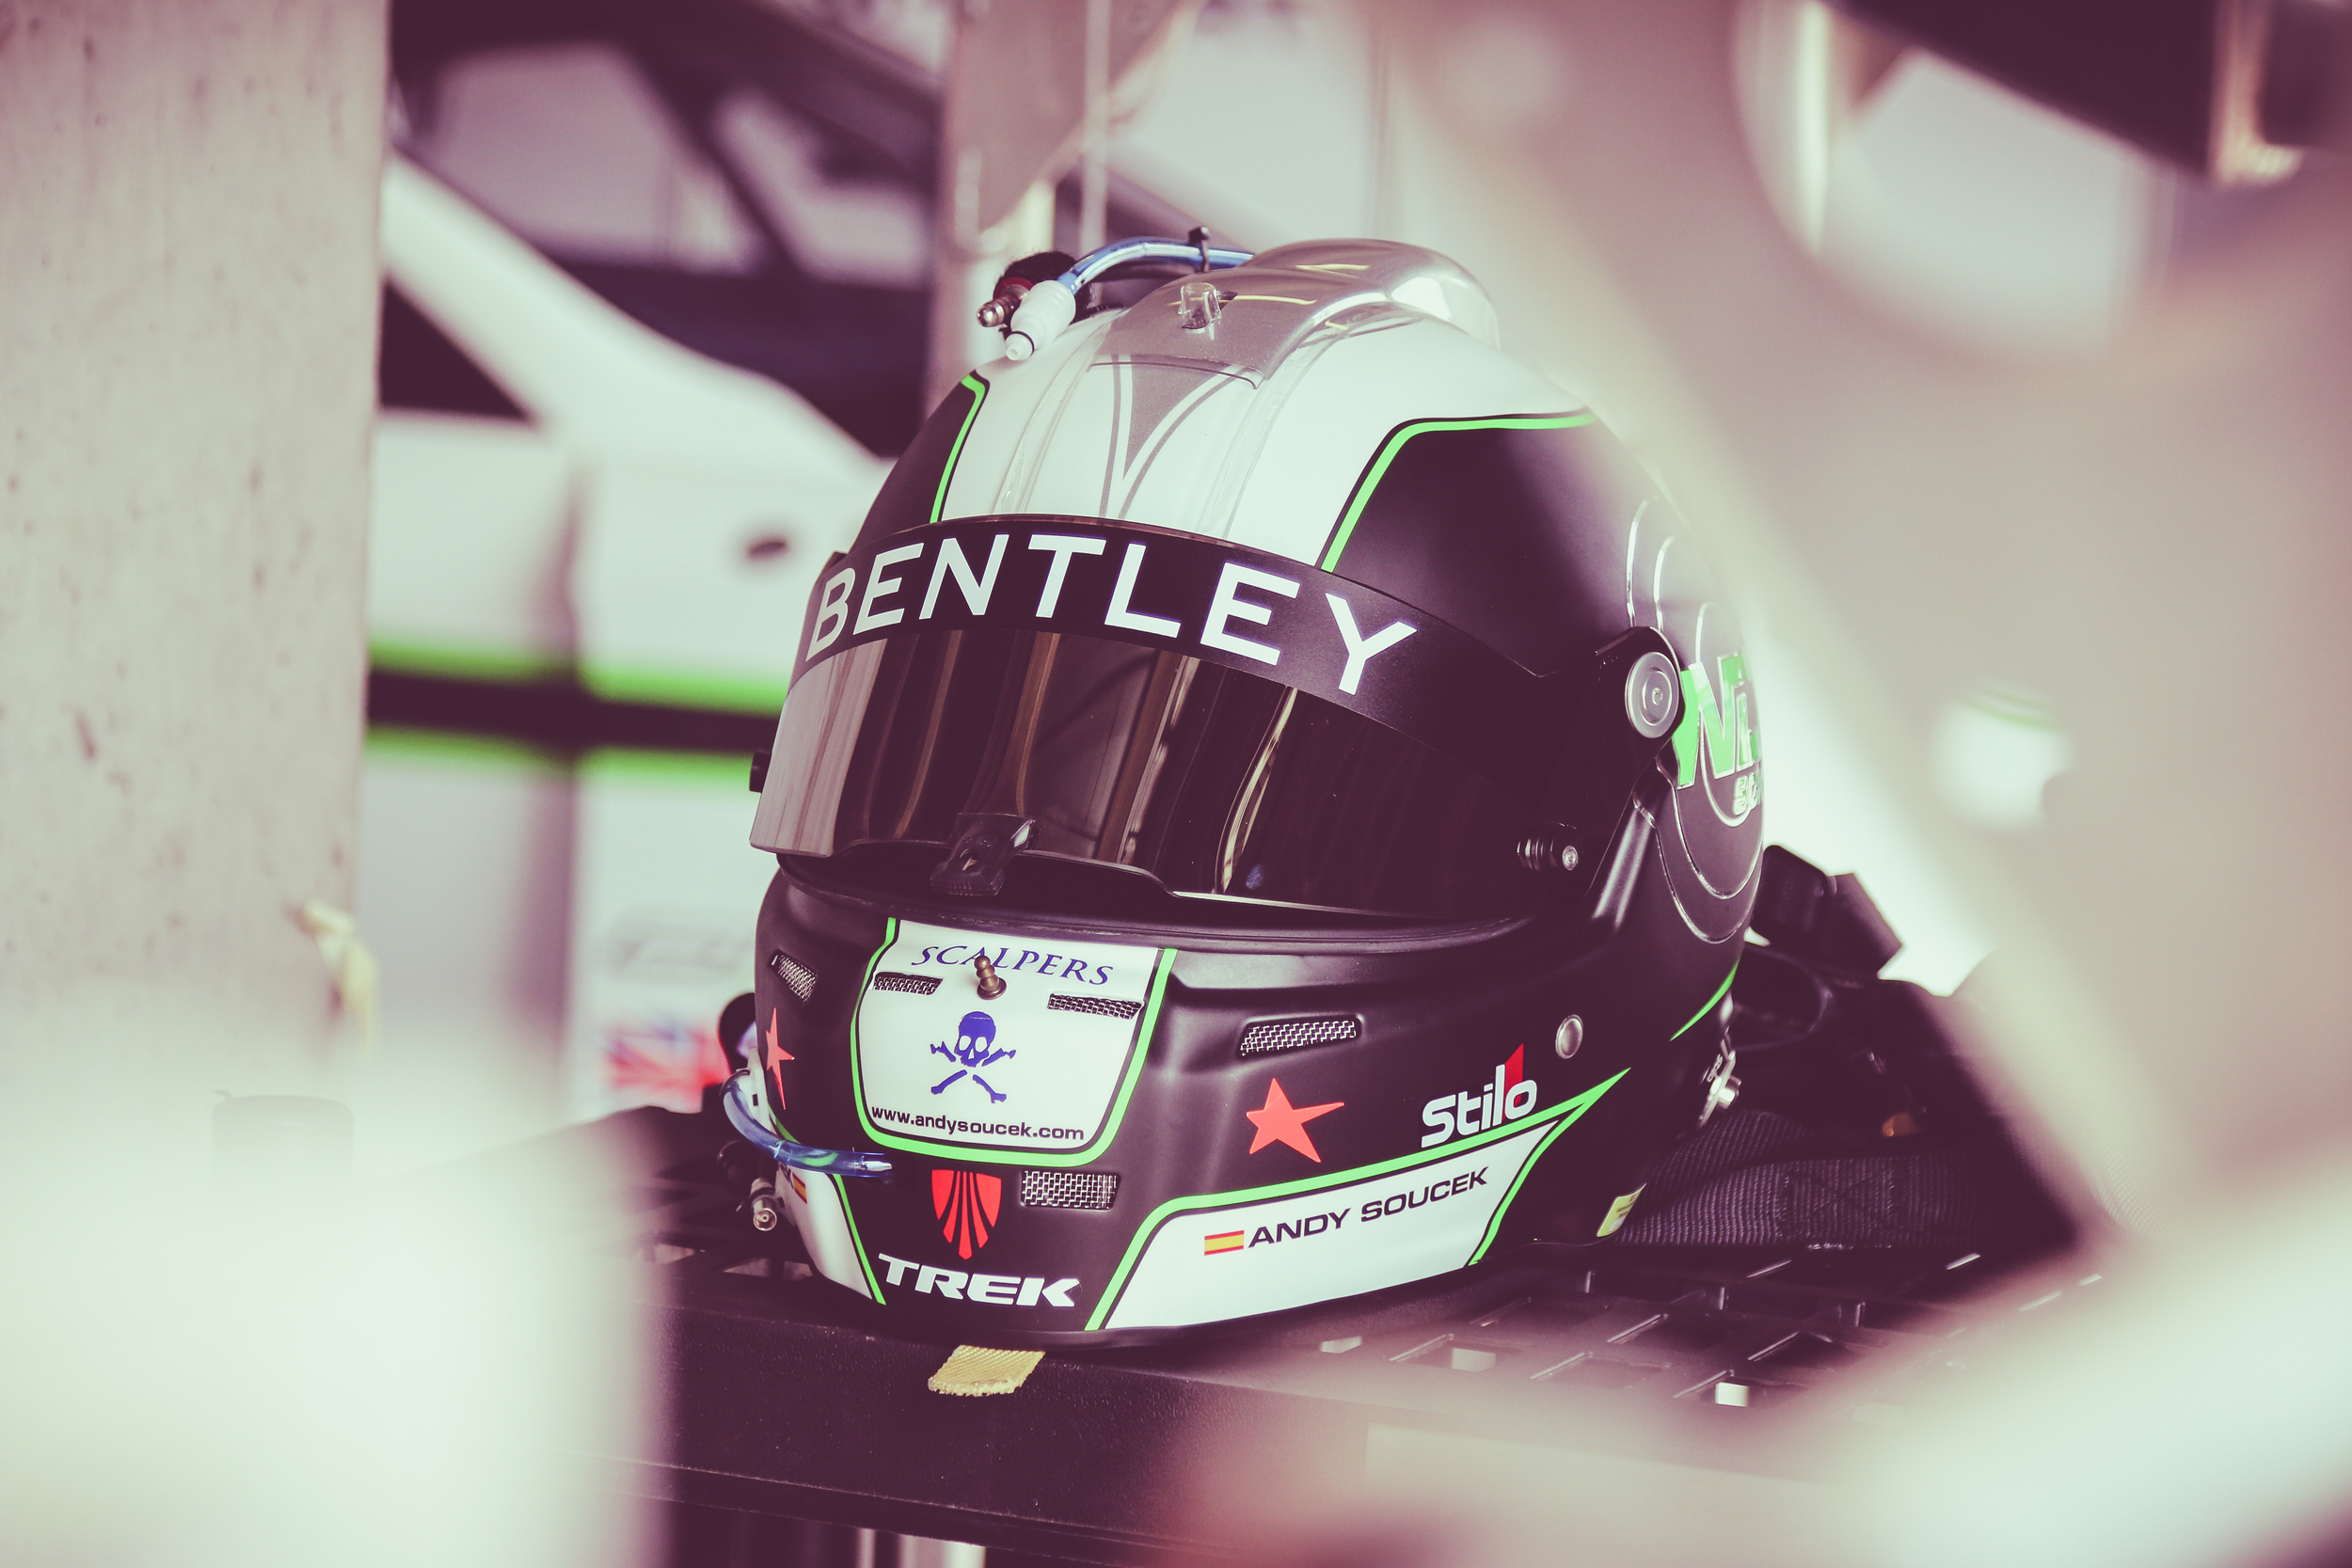 Andy Soucek and Bentley M-Sport return to the mountain this year as a warm-up to the Blancpain GT Series where they contest the full season.